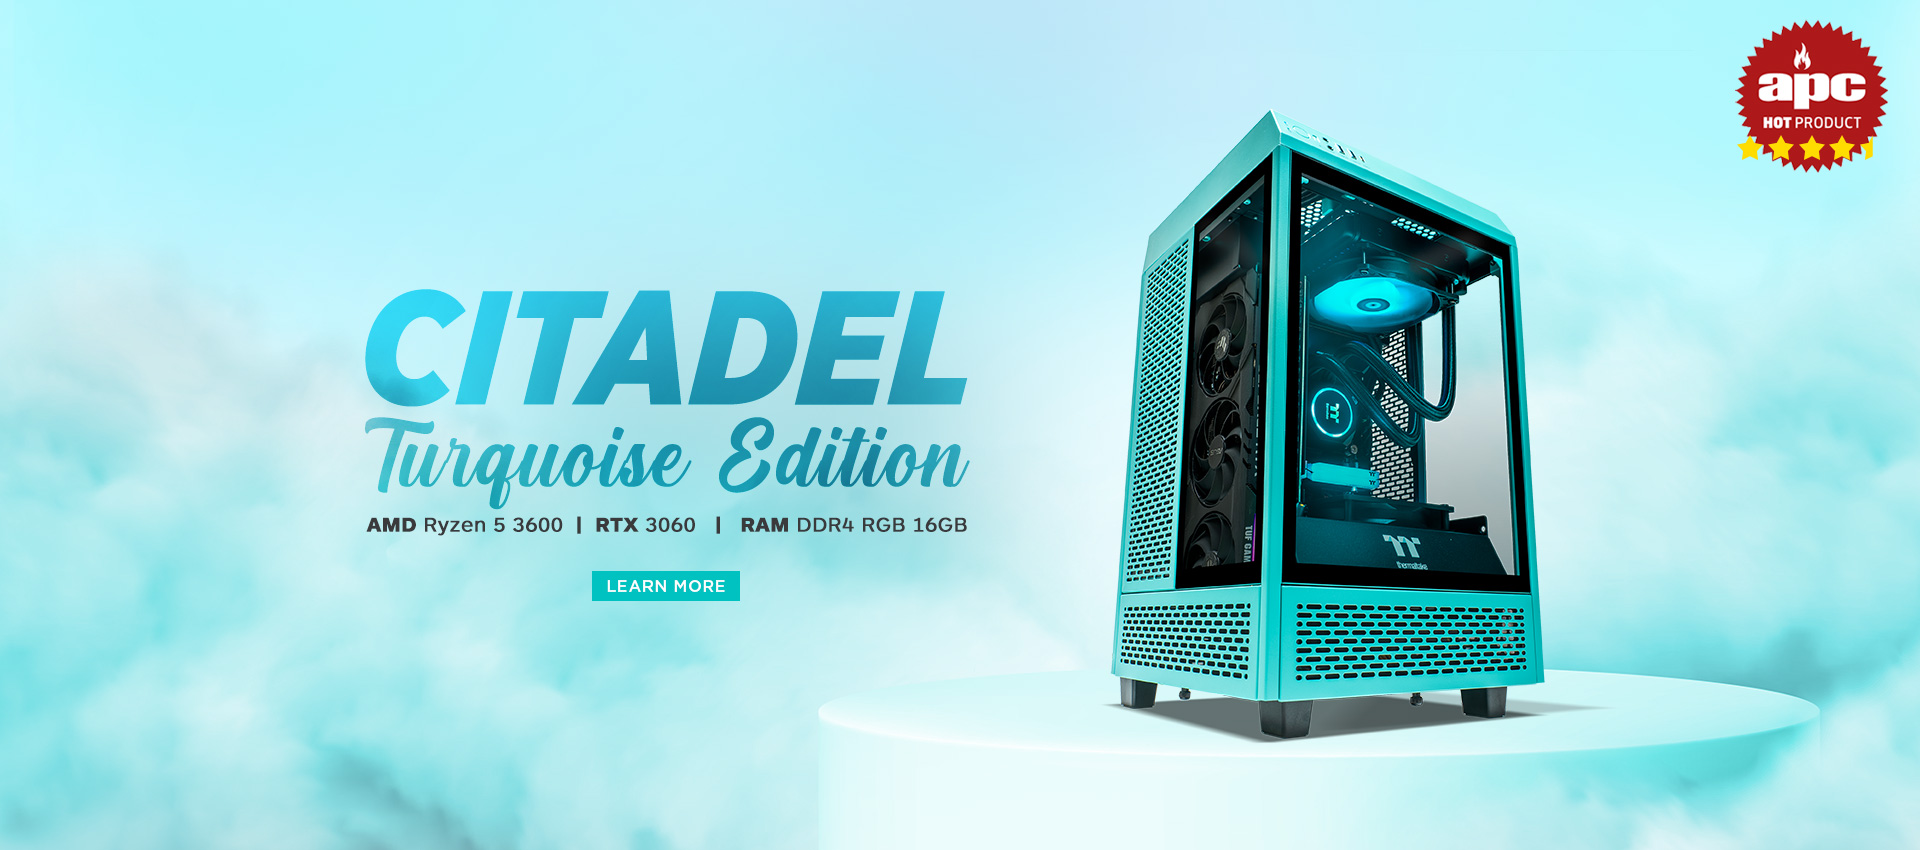 Citadel Turquoise Gaming System